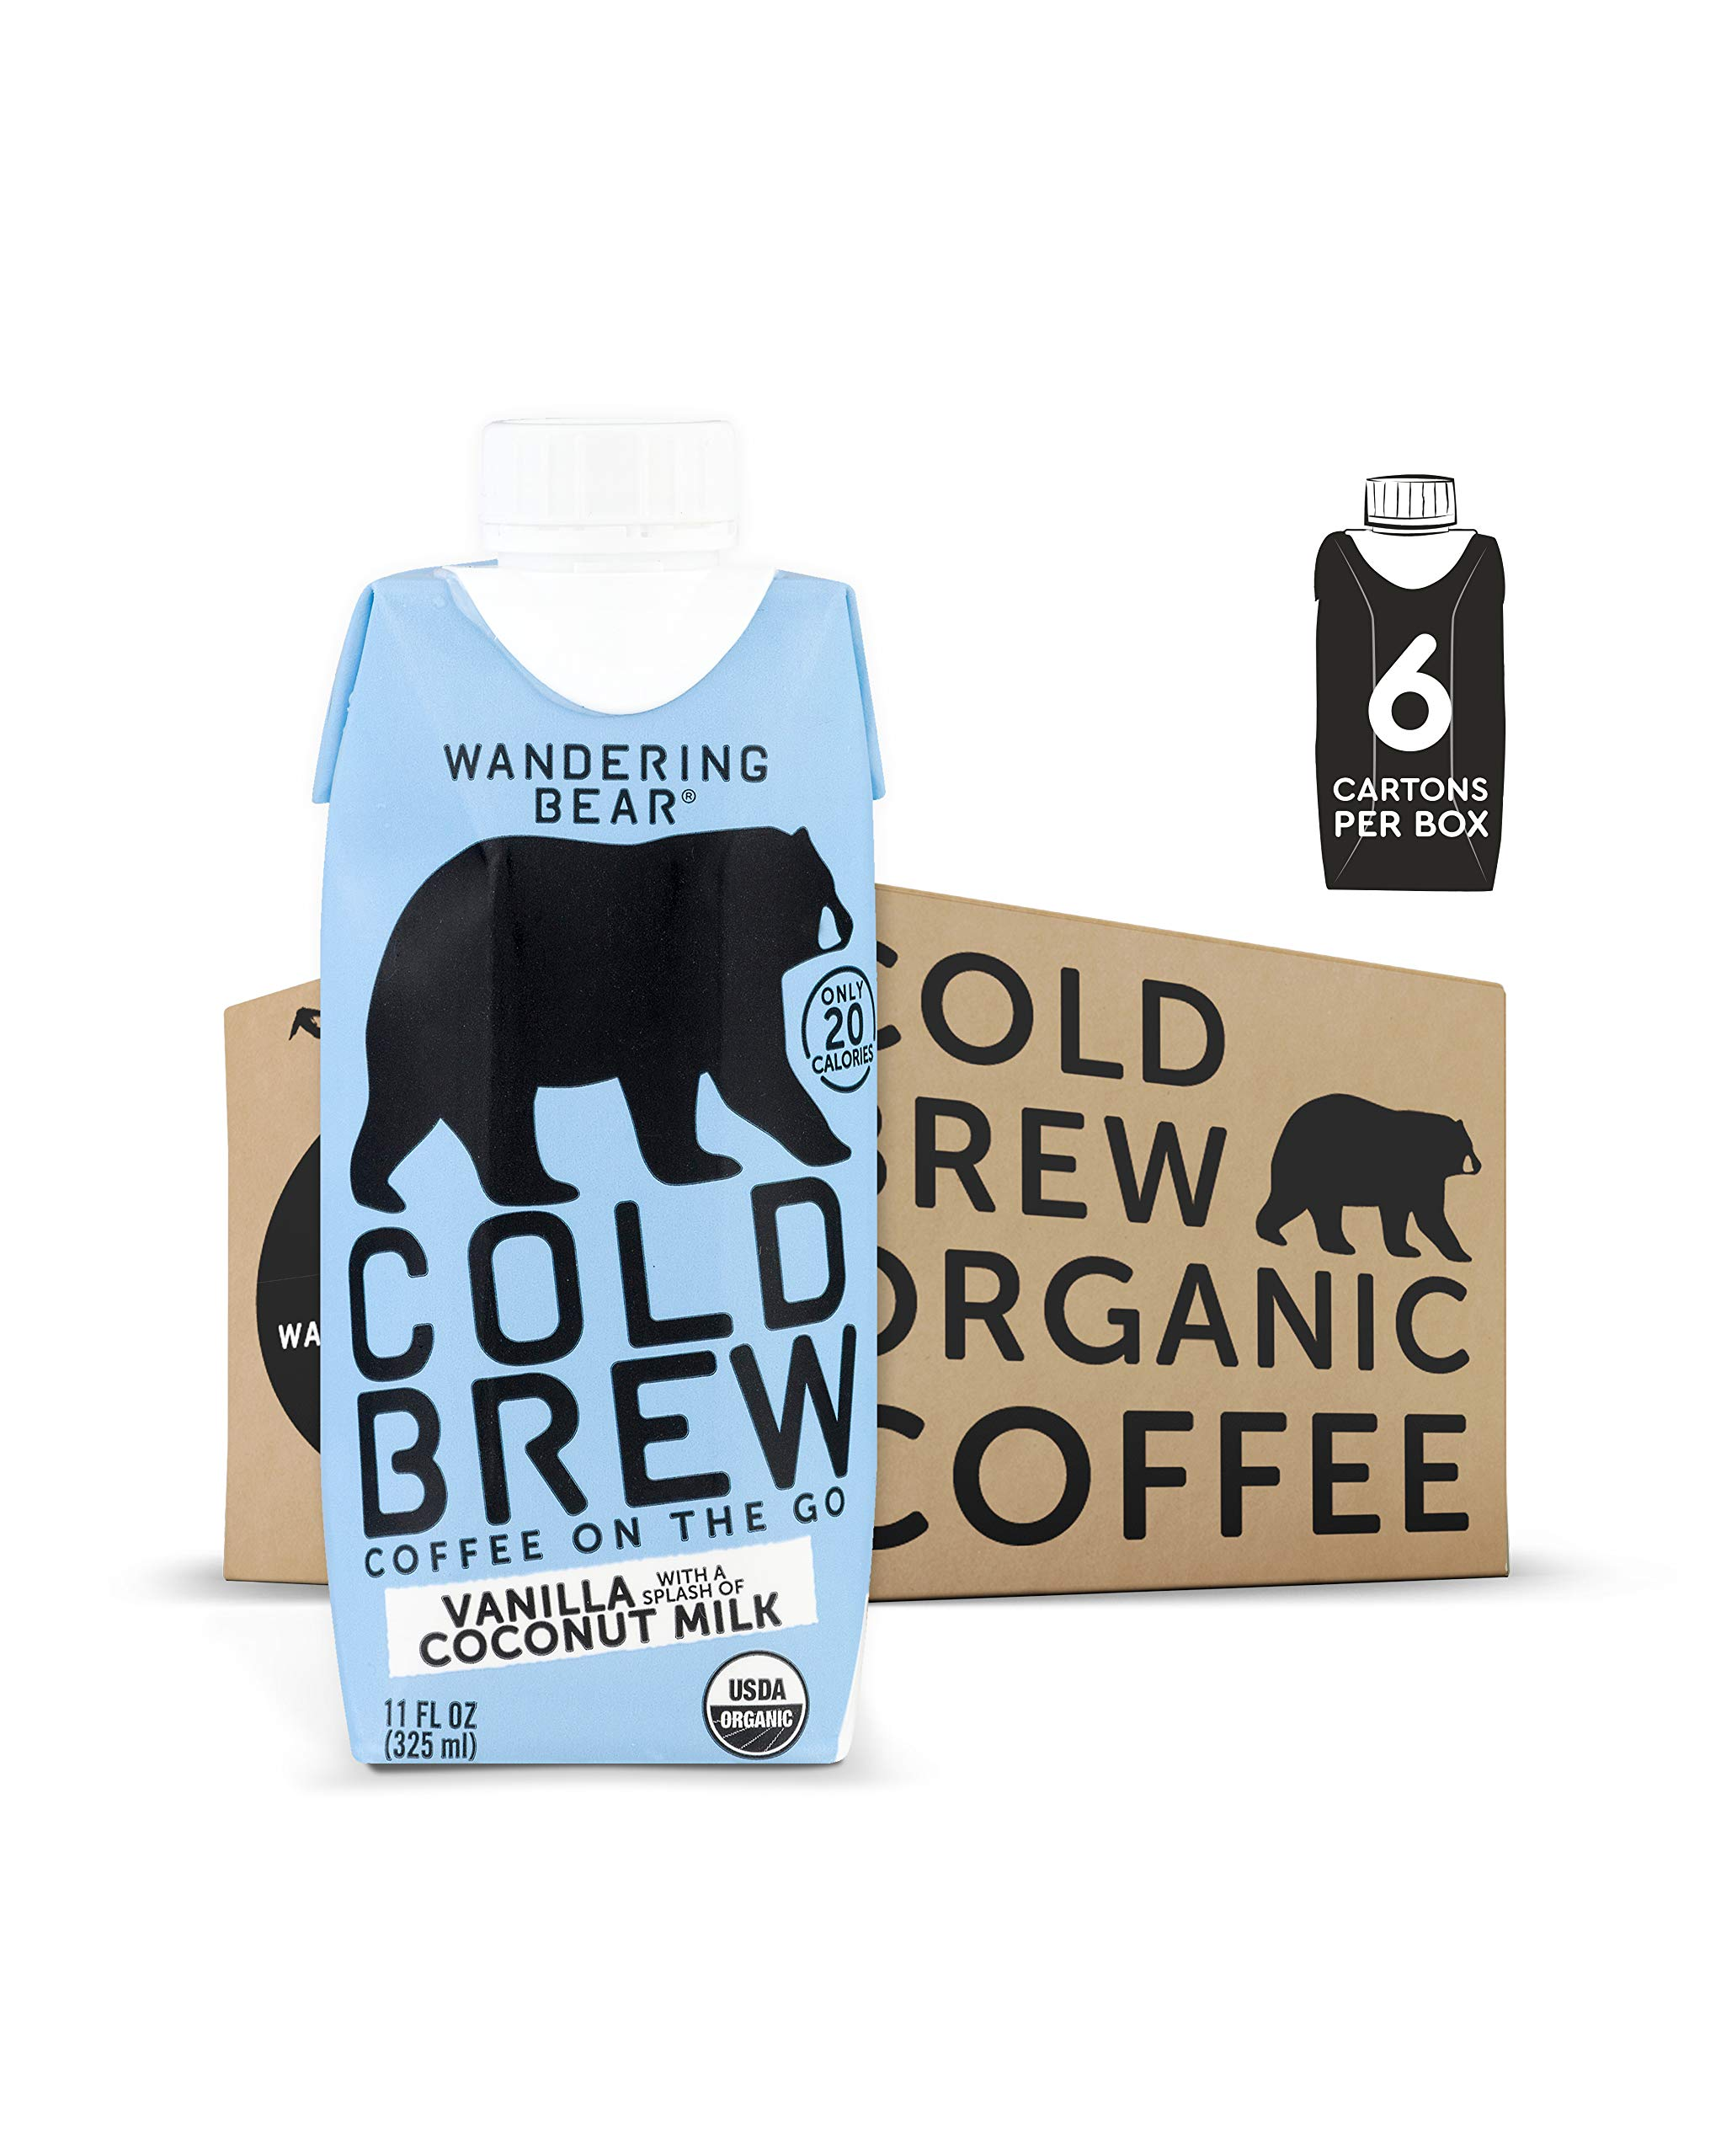 Wandering Bear Organic Cold Brew Coffee On-the-Go 11 oz Carton, Vanilla With Splash of Coconut Milk, No Sugar, Ready to Drink, Not a Concentrate (Pack of 6)